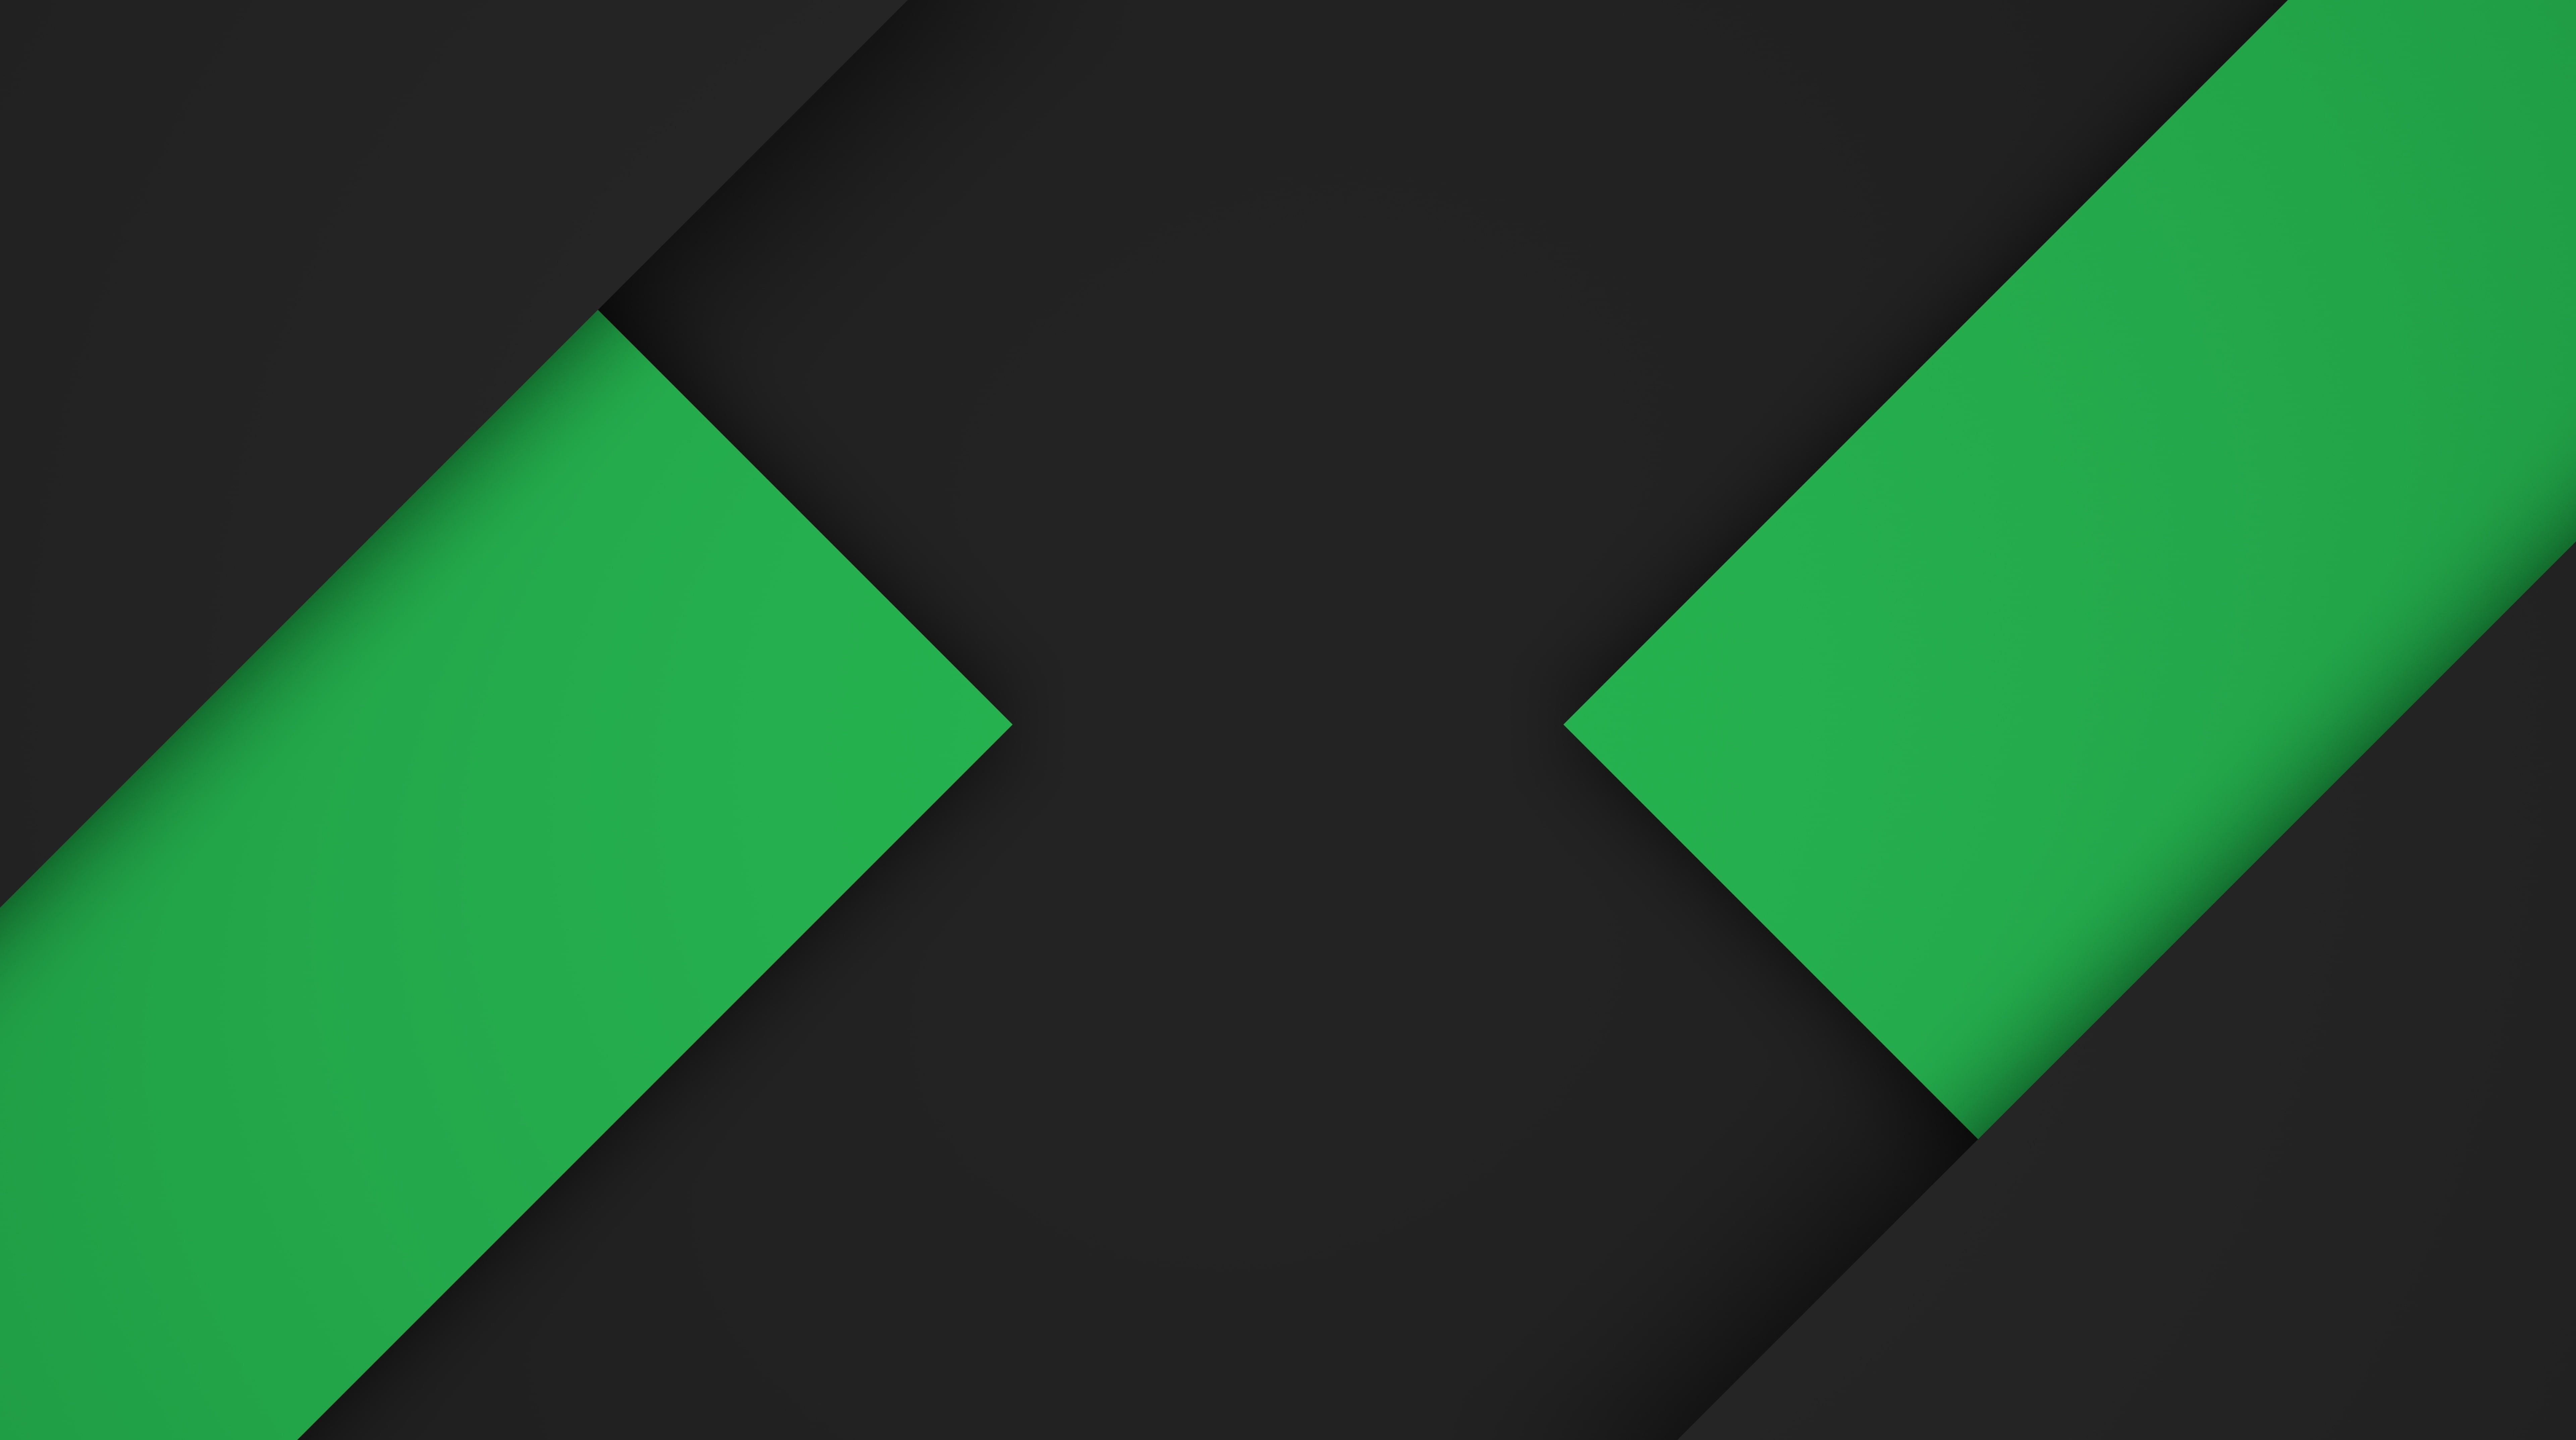 16k Material Dark Green Green And Black Abstract Illustration Computers Android 4k Material Material De Black Abstract Graphic Wallpaper Android Wallpaper